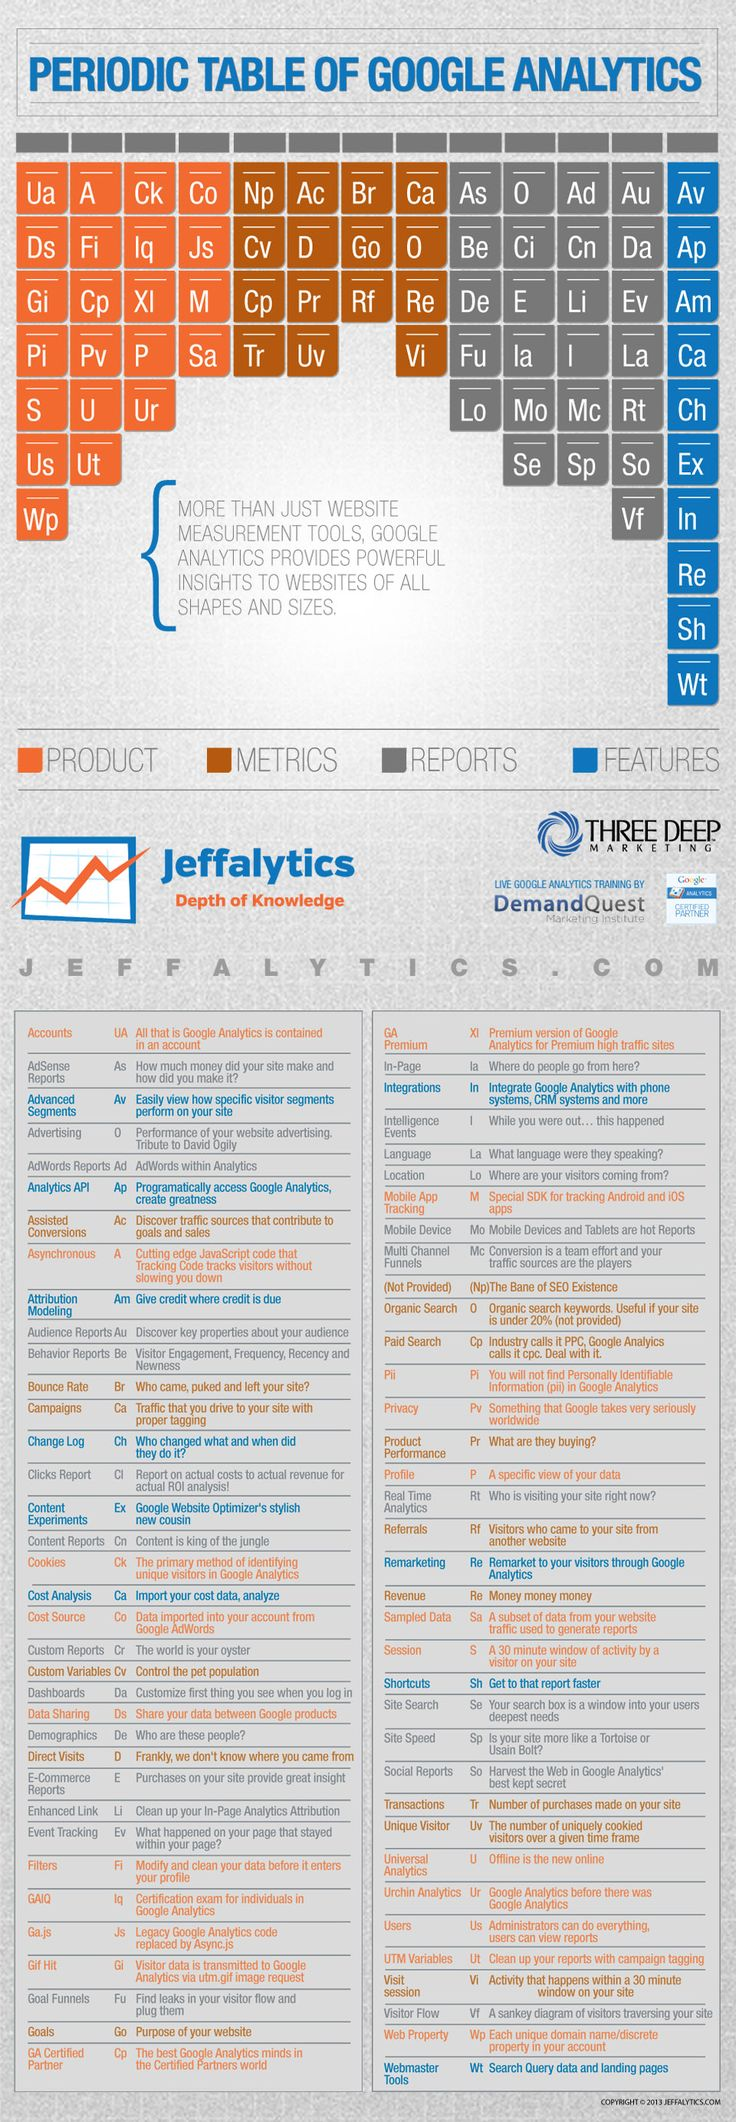 132 best periodic tables of all sorts images on pinterest infographic the periodic table of google analytics gamestrikefo Choice Image